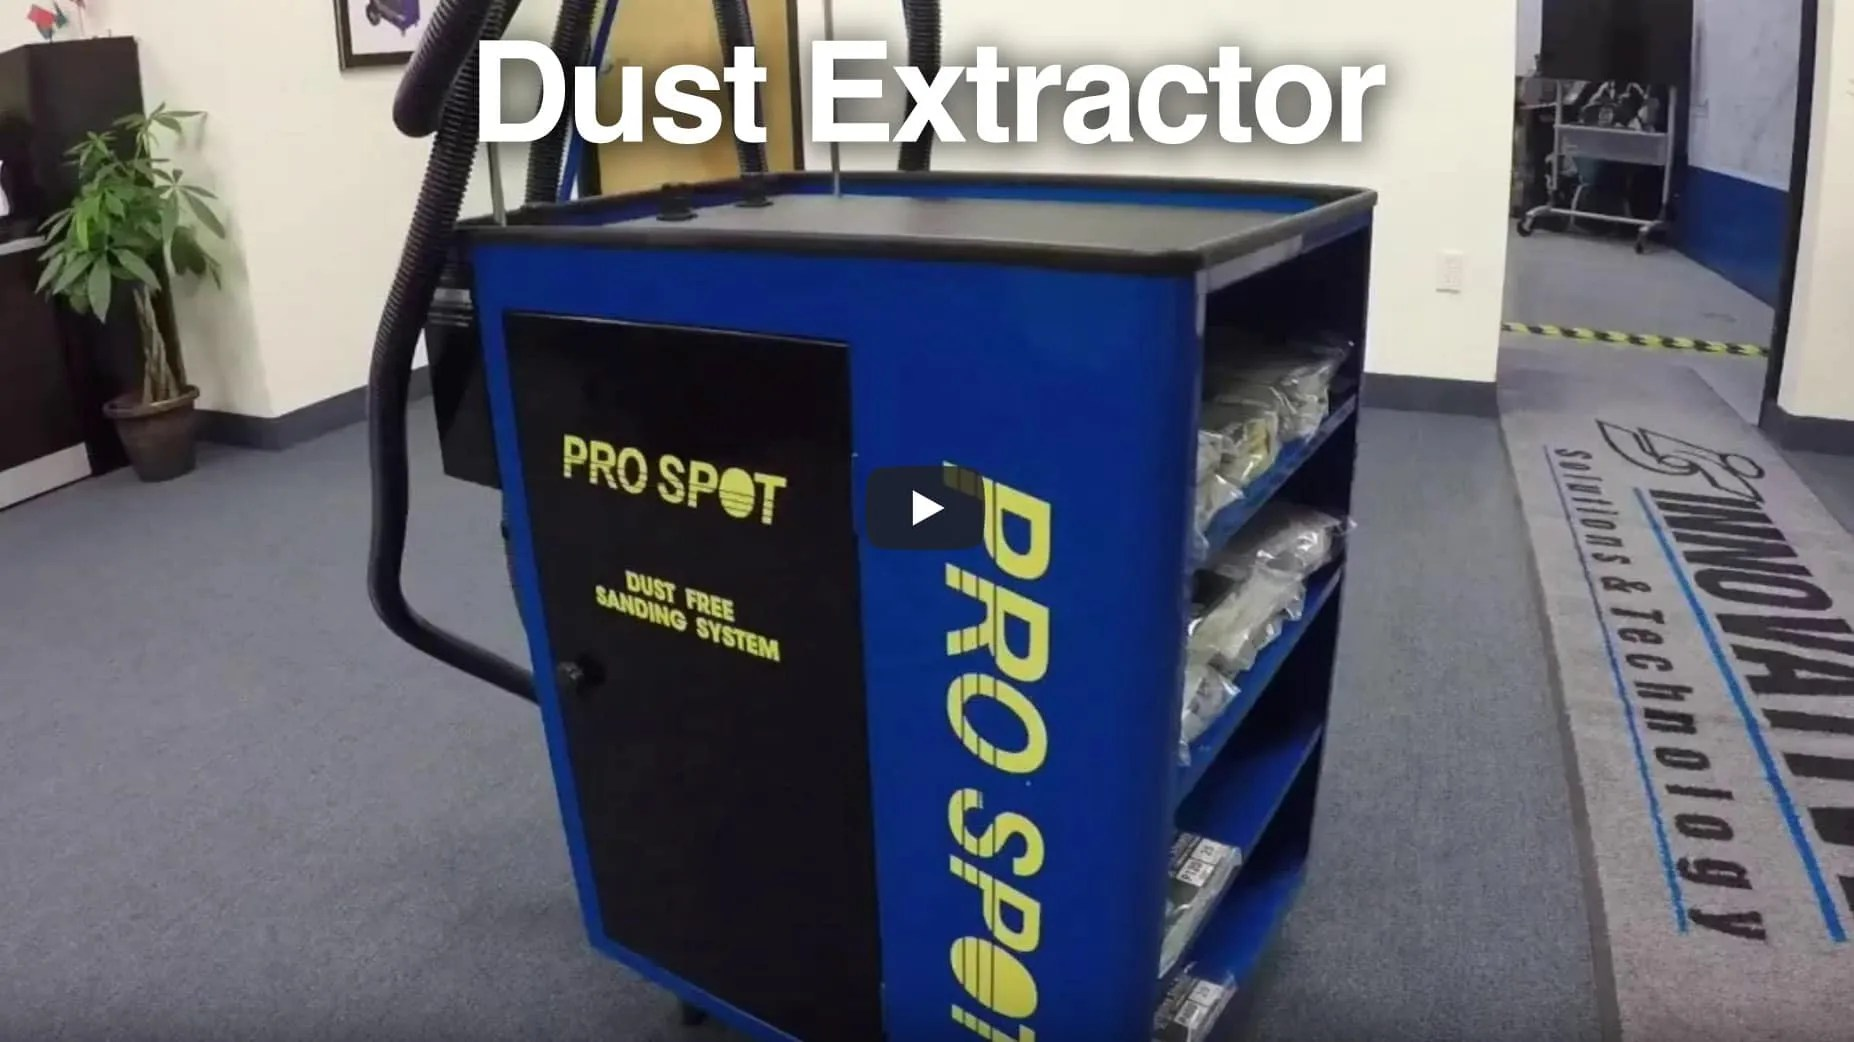 Dust Extractor Video